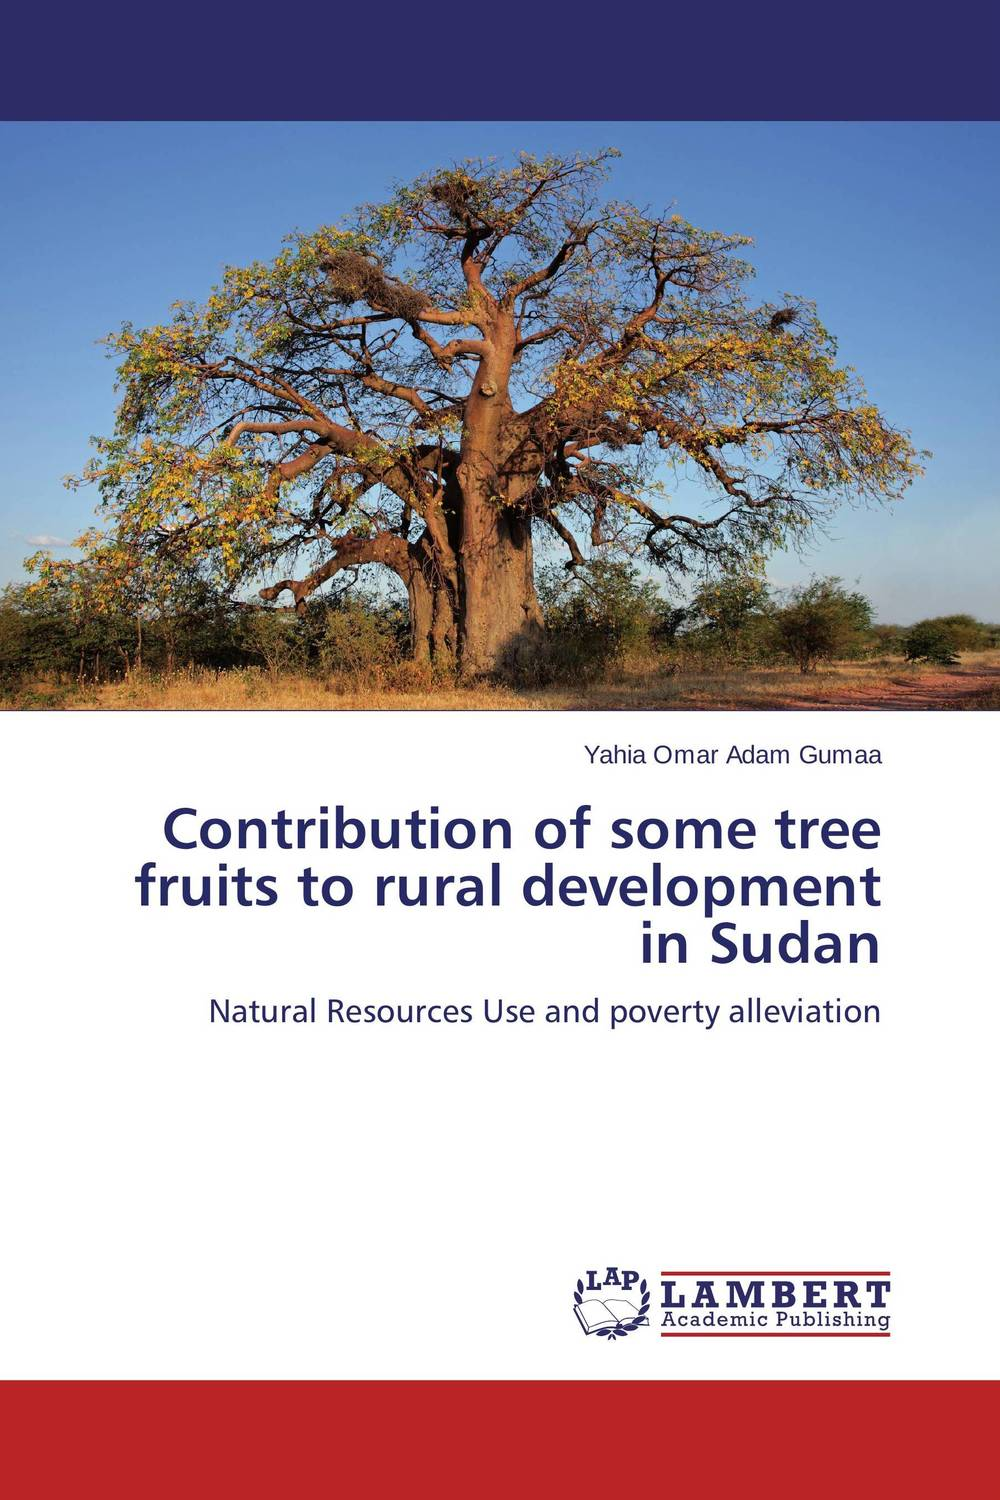 Contribution of some tree fruits to rural development in Sudan role of ict in rural poverty alleviation